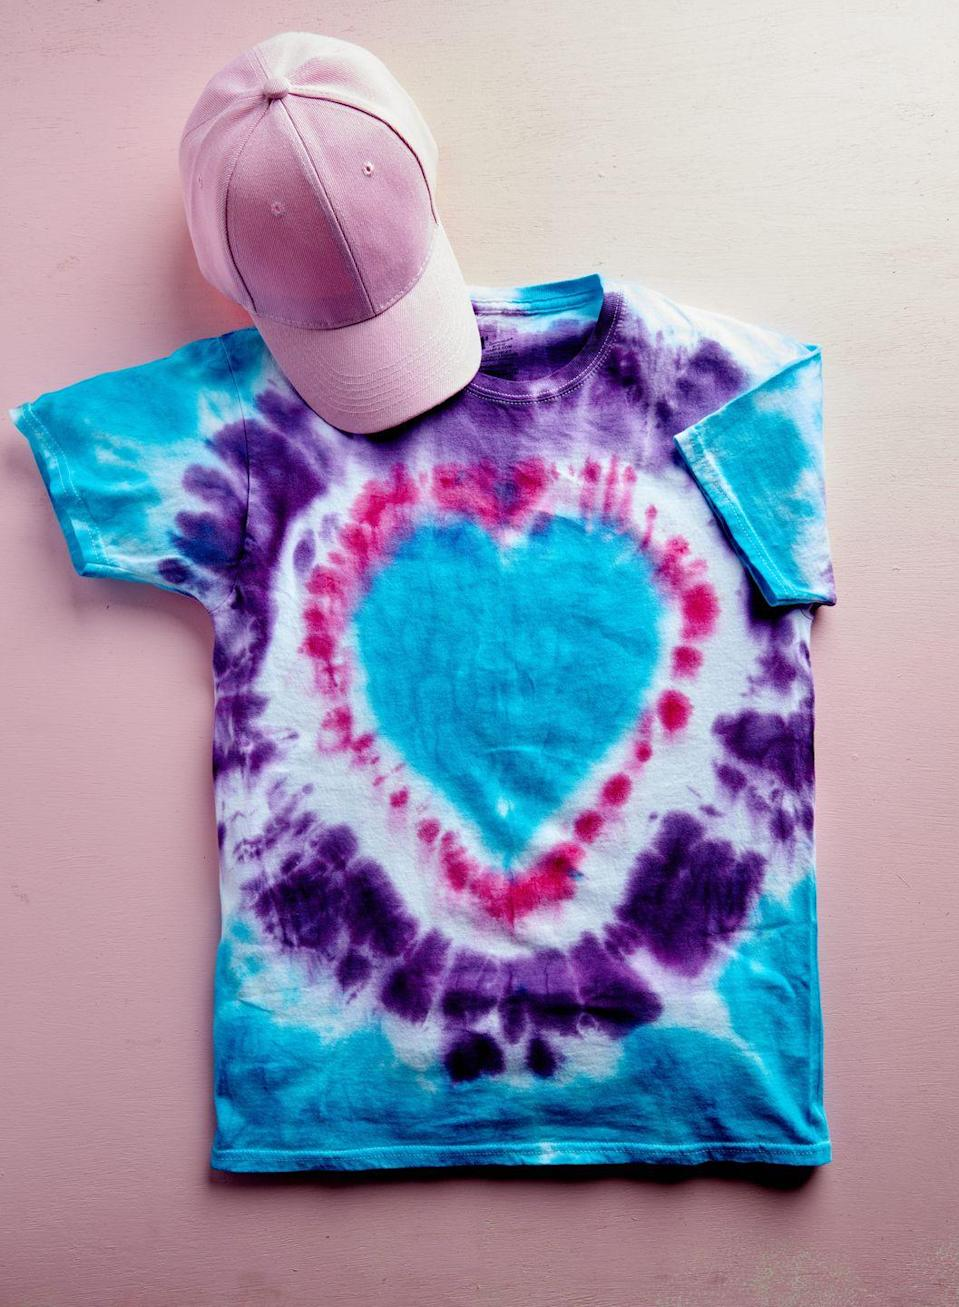 "<p>Create some high-fashion for the big day by creating a custom tie dye T-shirt.</p><p><strong>To make:</strong> Start by washing a 100% cotton T-shirt. While still damp, fold the shirt in half. Using a chalk pencil or disappearing pen, draw an exaggerated heart on half of the shirt, starting and ending at the fold. Pleat the shirt, lining up the heart line (once pleated the line should be straight). Use a zip tie or rubber band to hold pleats together. Create more pleats along the remaining shirt, holding in place with zip ties or rubber bands. Place different color dyes in separate squeeze bottles (you will need as many colors ass pleated sections). Start by squeezing dye on heart section stopping 1/2 inch from the zip tie. Continue dying, using a another color between each zip tie. Allow to dry completely then remove ties.</p><p><a class=""link rapid-noclick-resp"" href=""https://www.amazon.com/s?k=rit+dye&tag=syn-yahoo-20&ascsubtag=%5Bartid%7C10050.g.1584%5Bsrc%7Cyahoo-us"" rel=""nofollow noopener"" target=""_blank"" data-ylk=""slk:SHOP DYE"">SHOP DYE</a></p>"